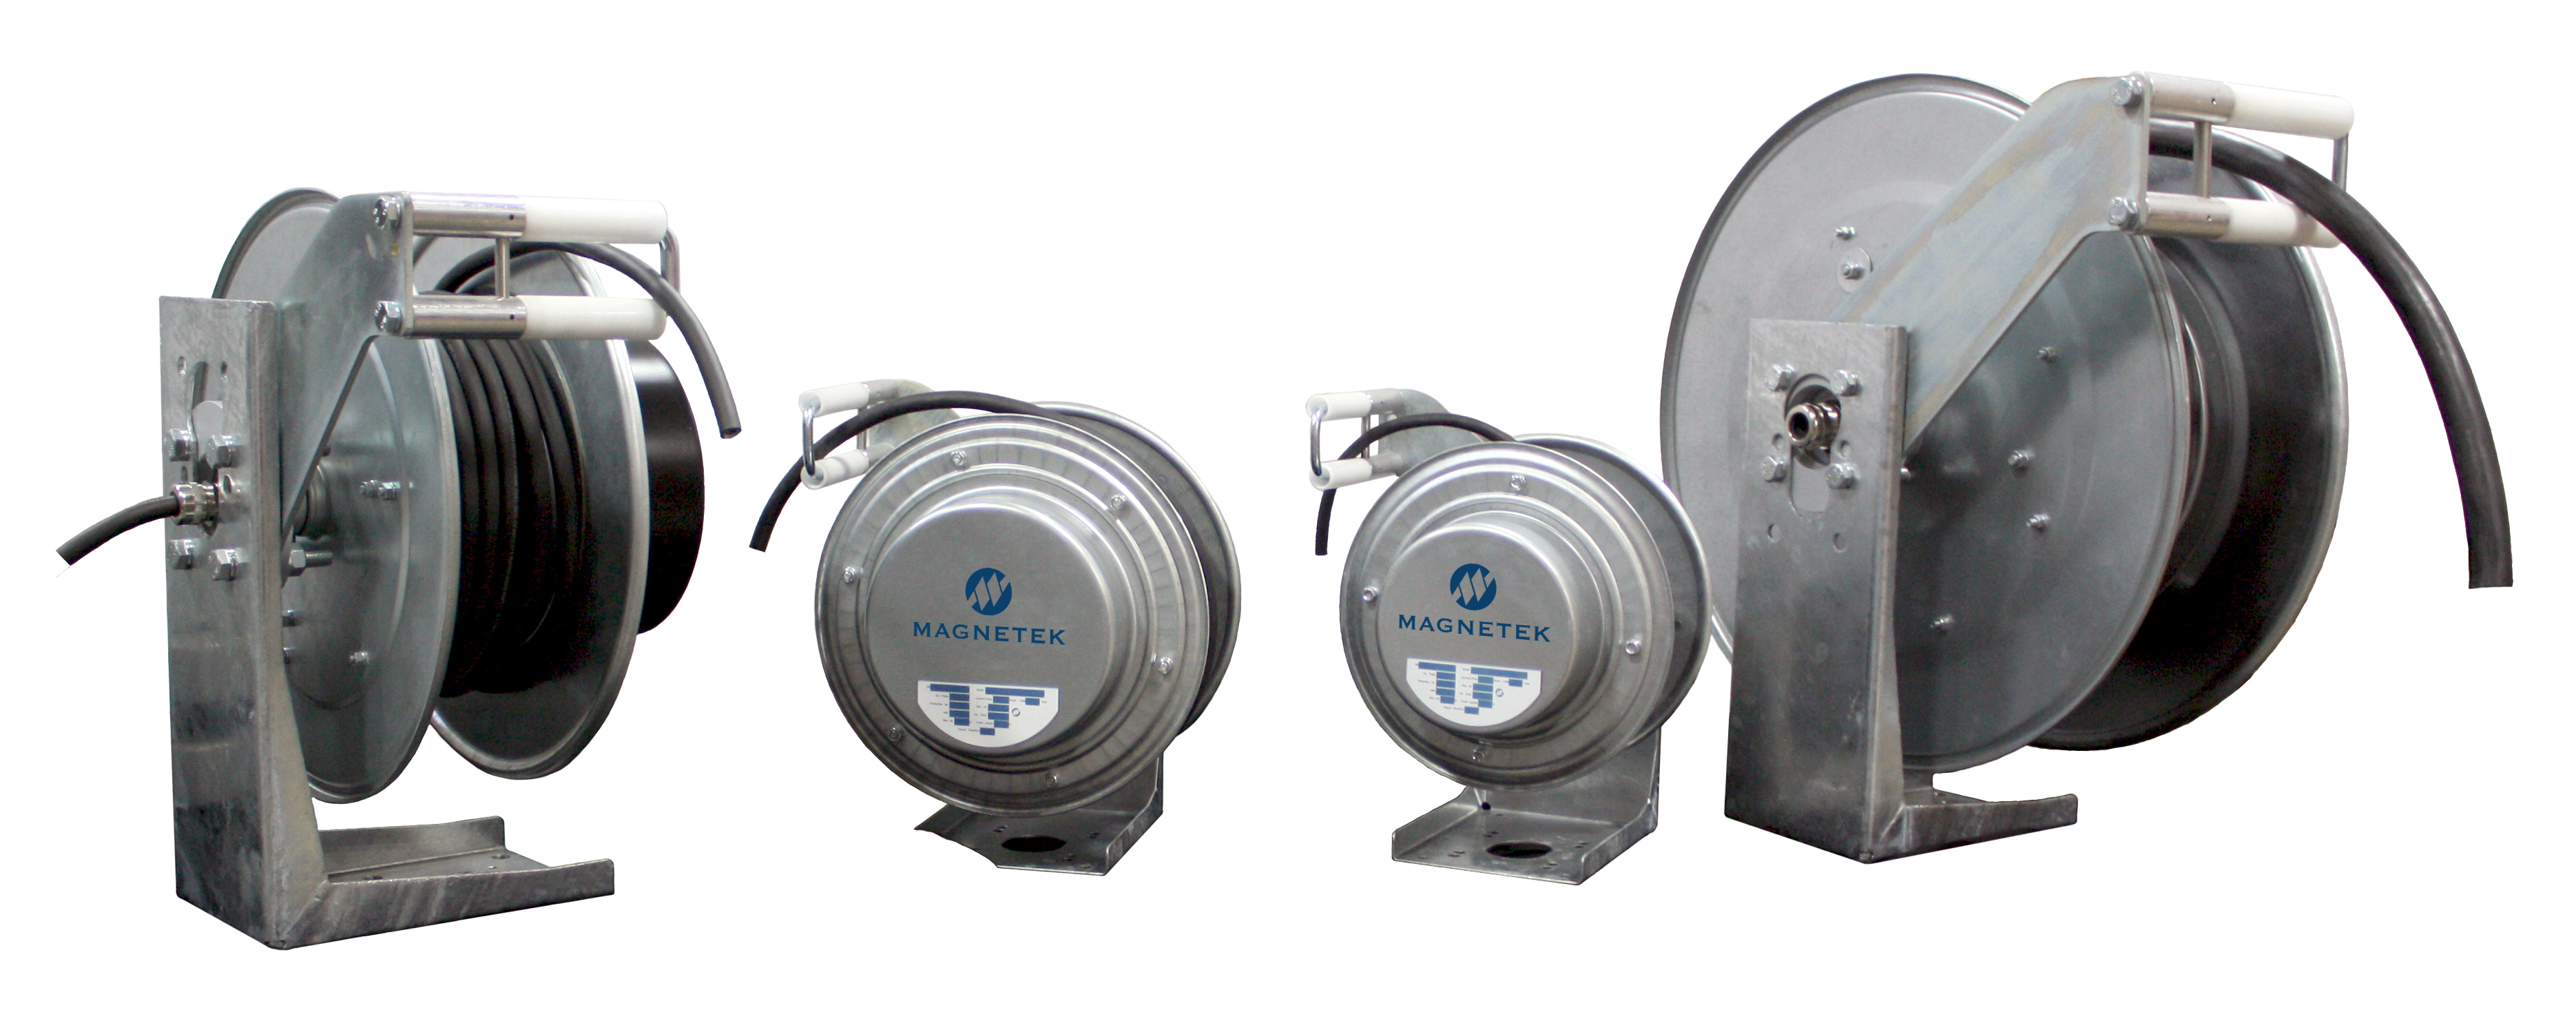 Cable Reels Product : New product line cable reels